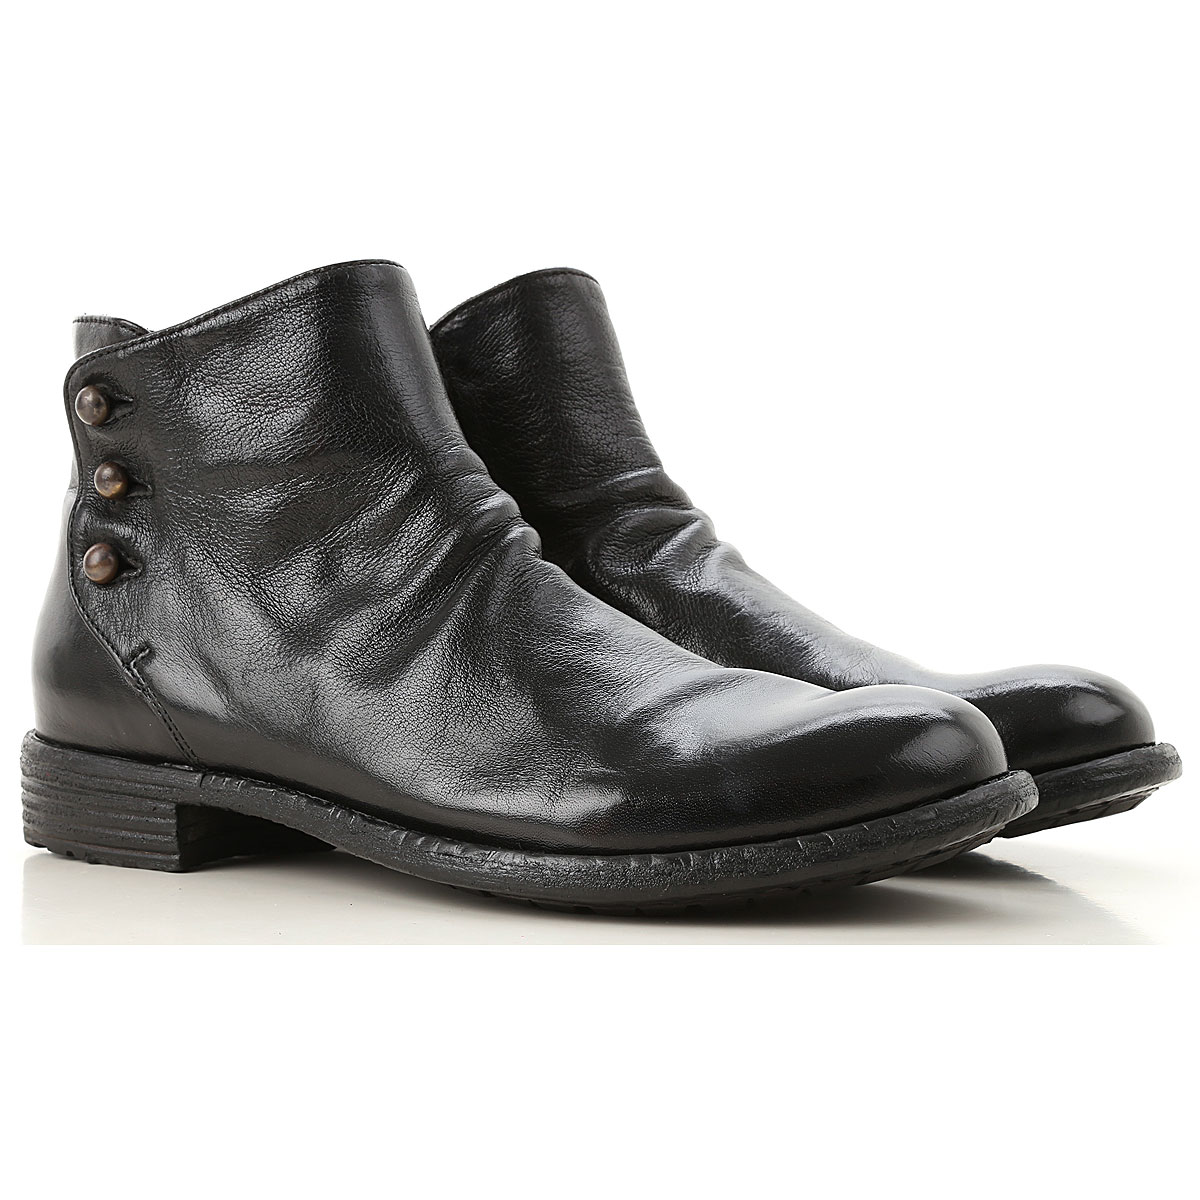 Image of Officine Creative Boots for Women, Booties, Black, Leather, 2017, 6 7 8